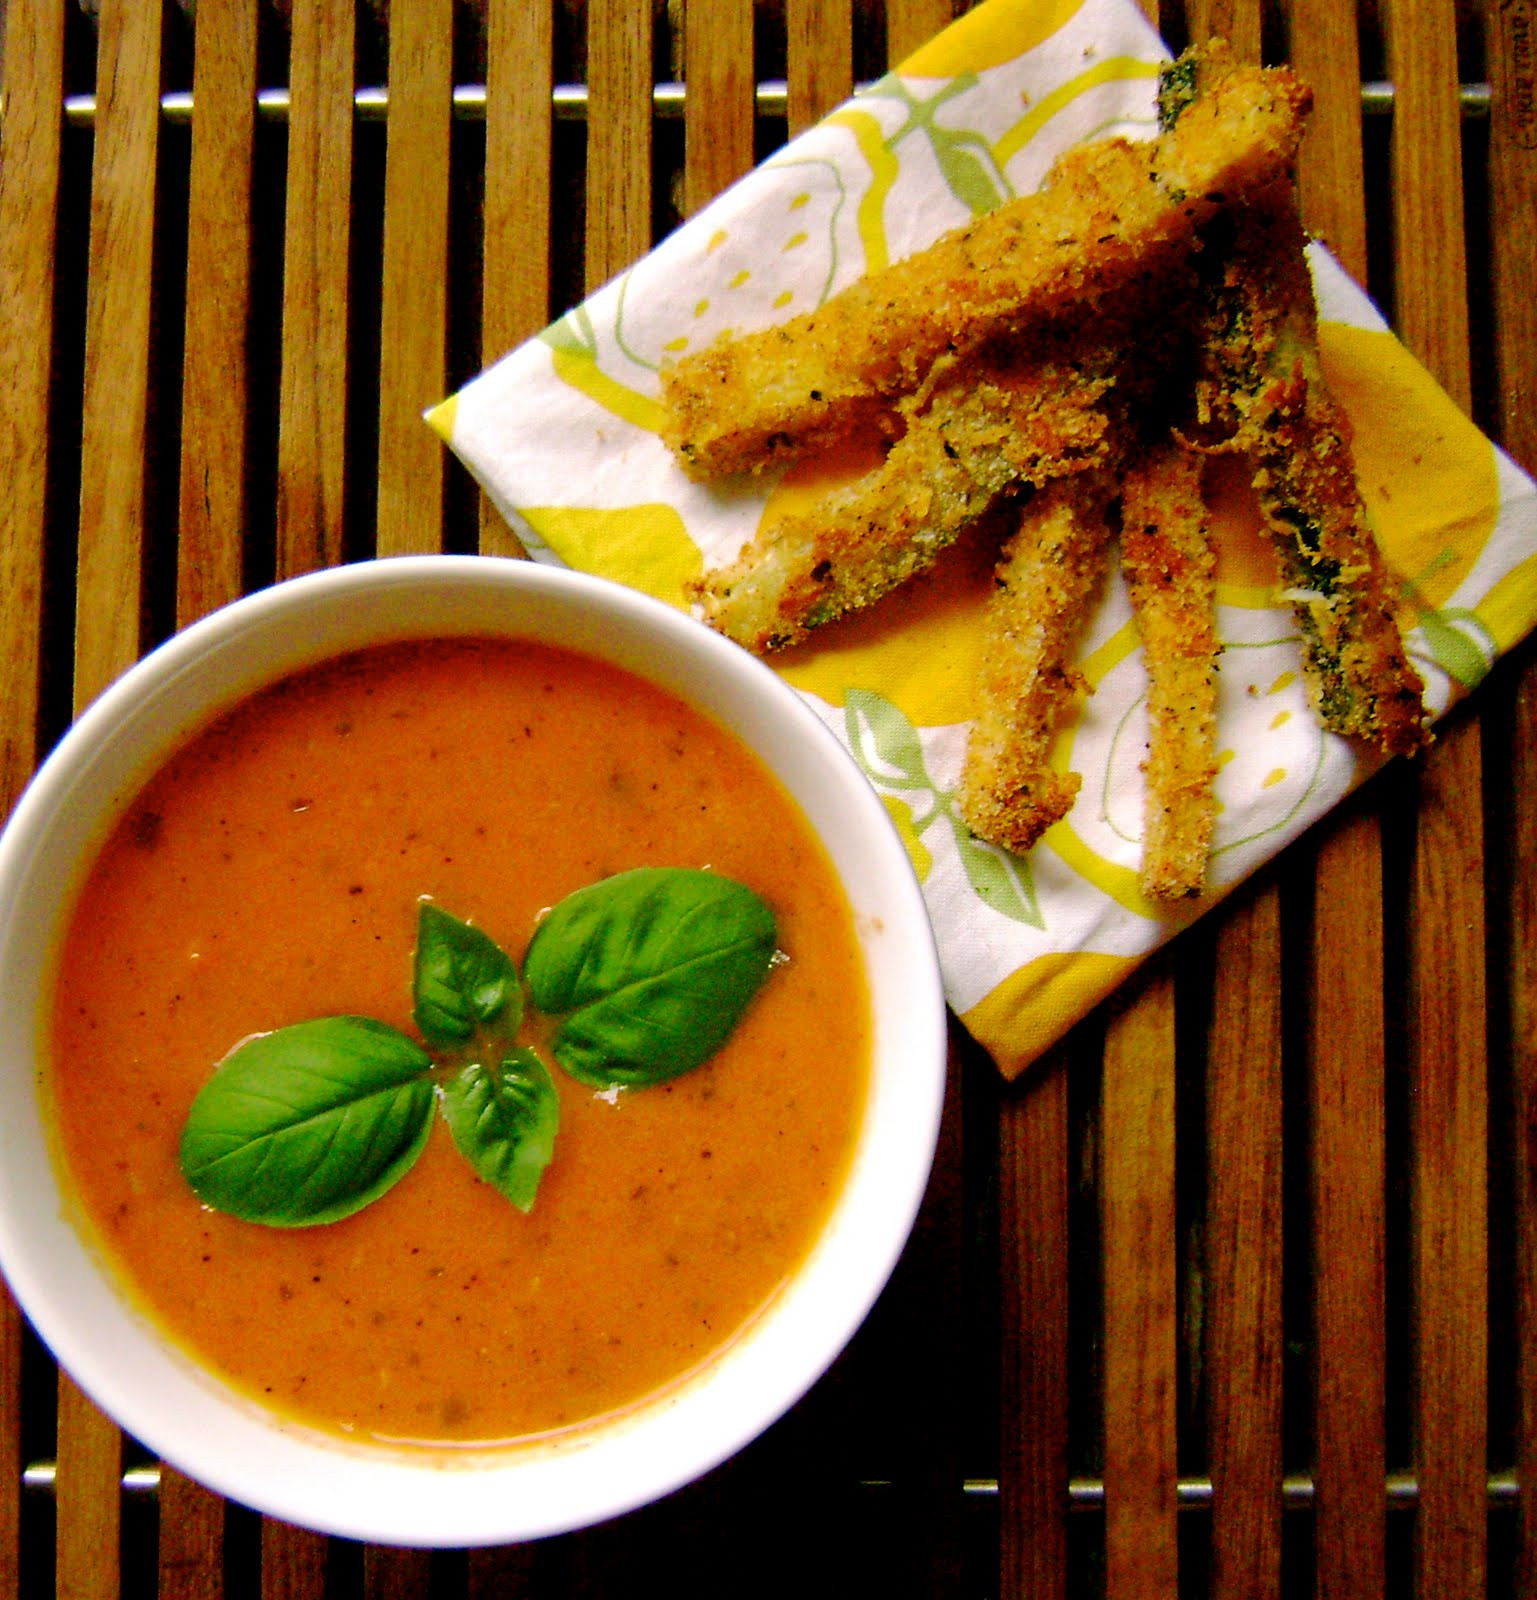 Vegan Tomato Soup  today i ate creamy vegan tomato soup with zucchini fries